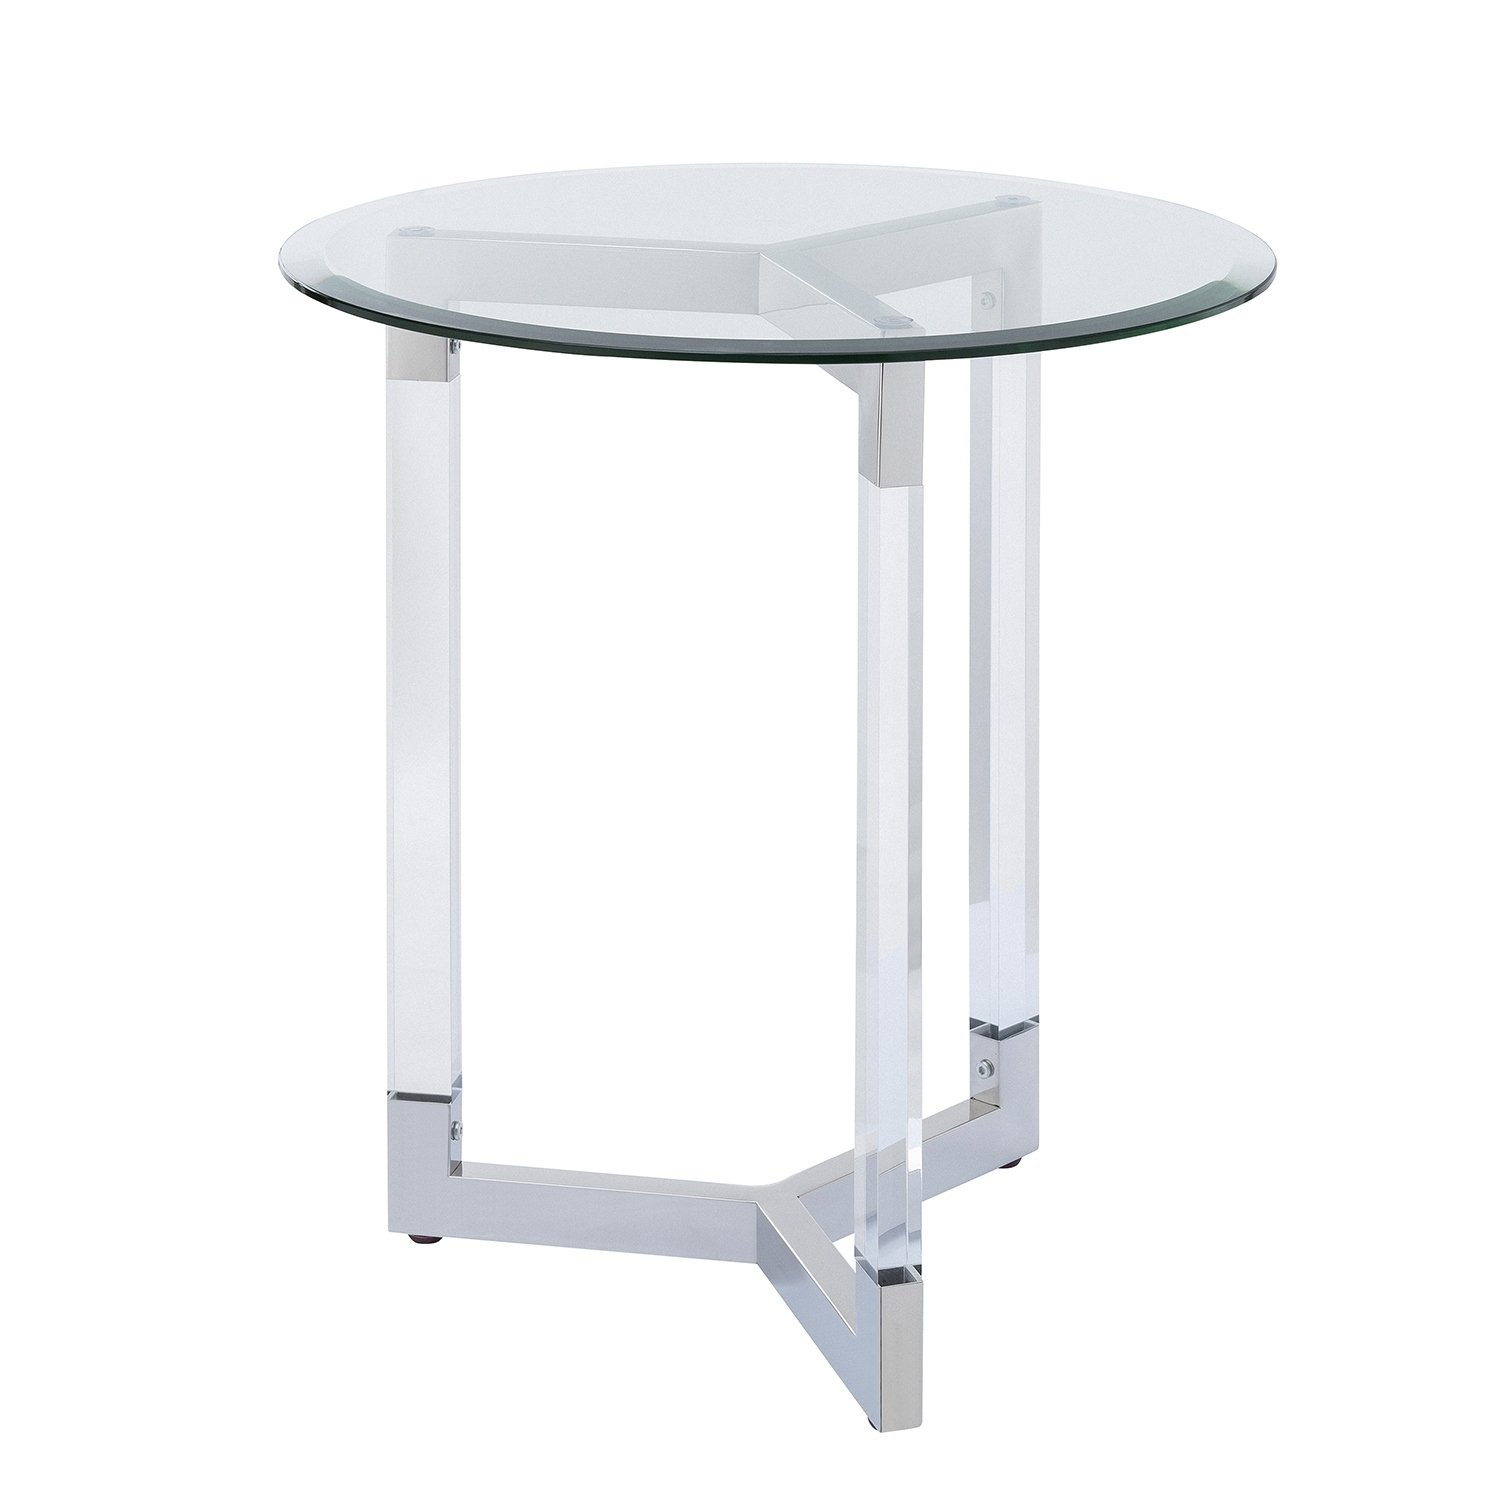 harper blvd dauphine round acrylic accent table with glass top free shipping today small square coffee storage unique couches blue bedside baby relax glider outdoor sideboards and